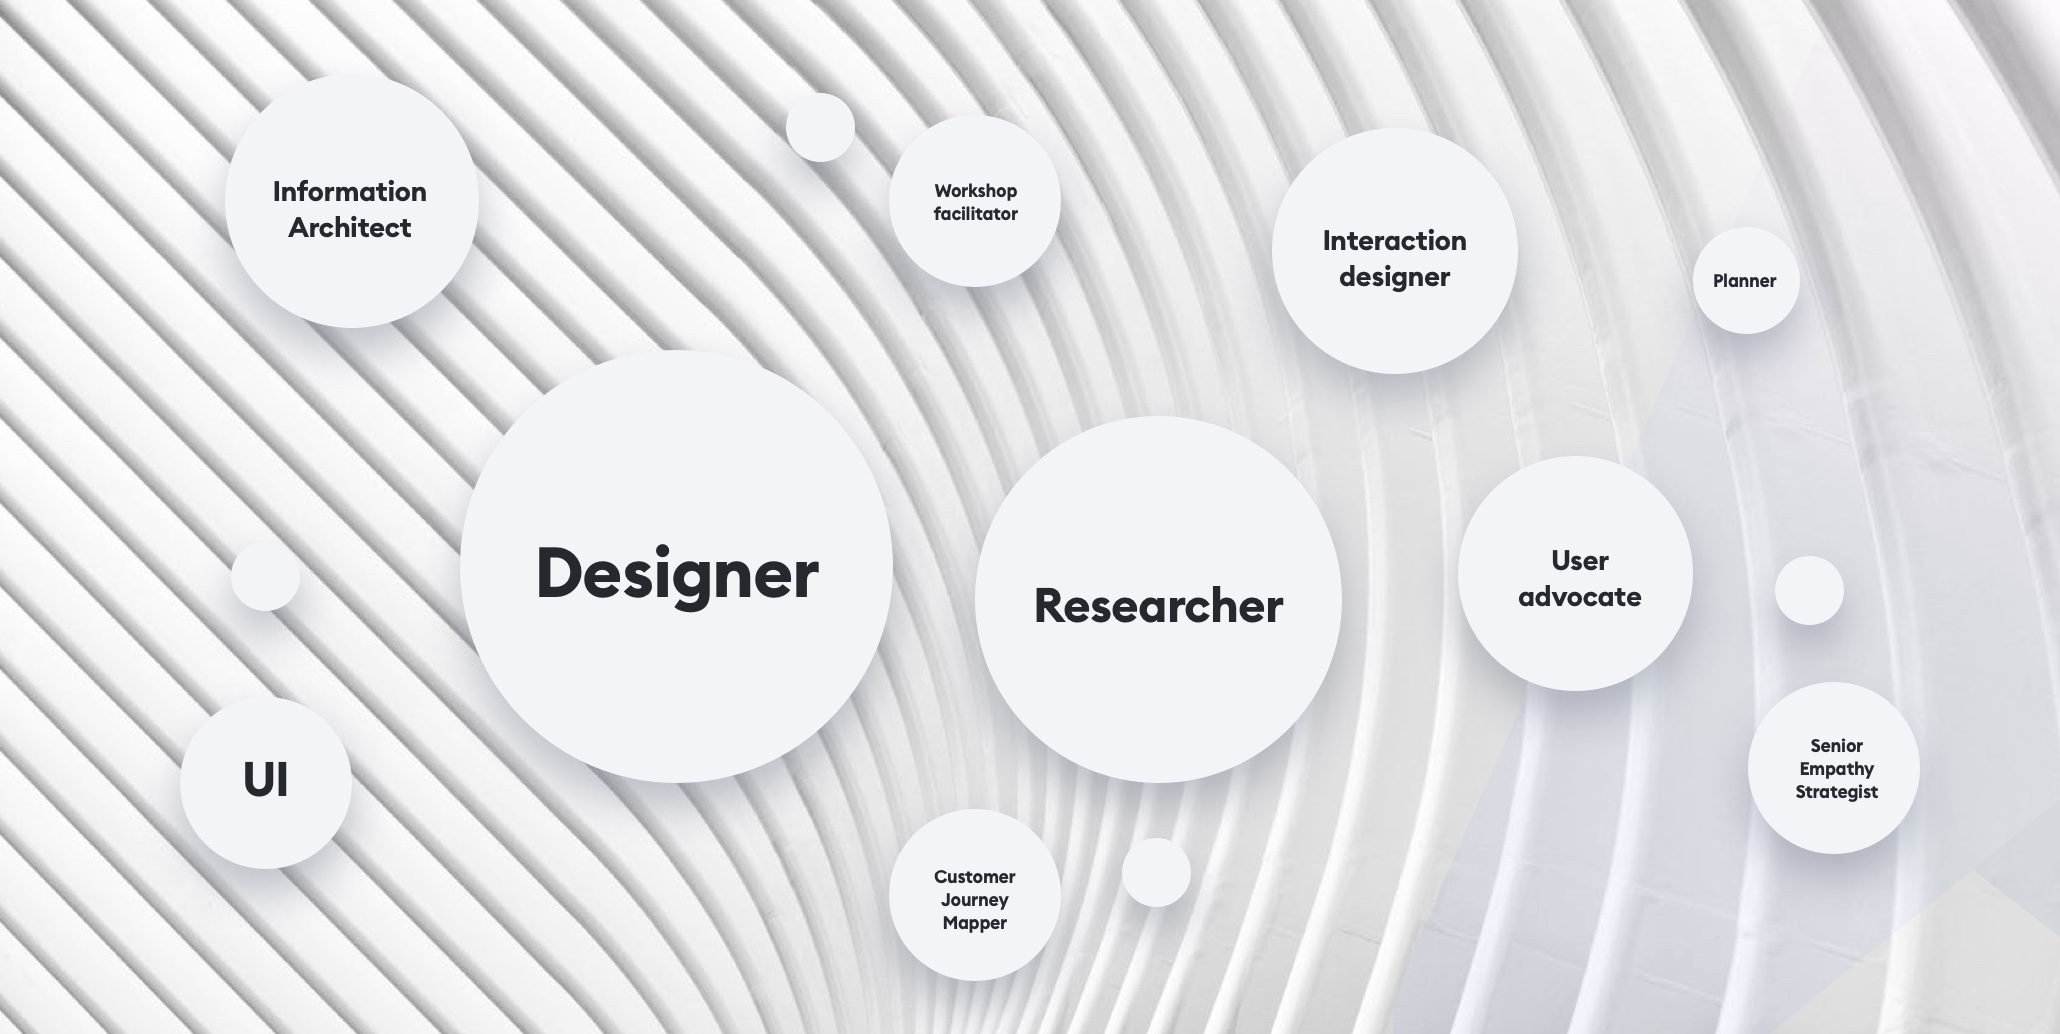 Job titles and roles in UX are changing